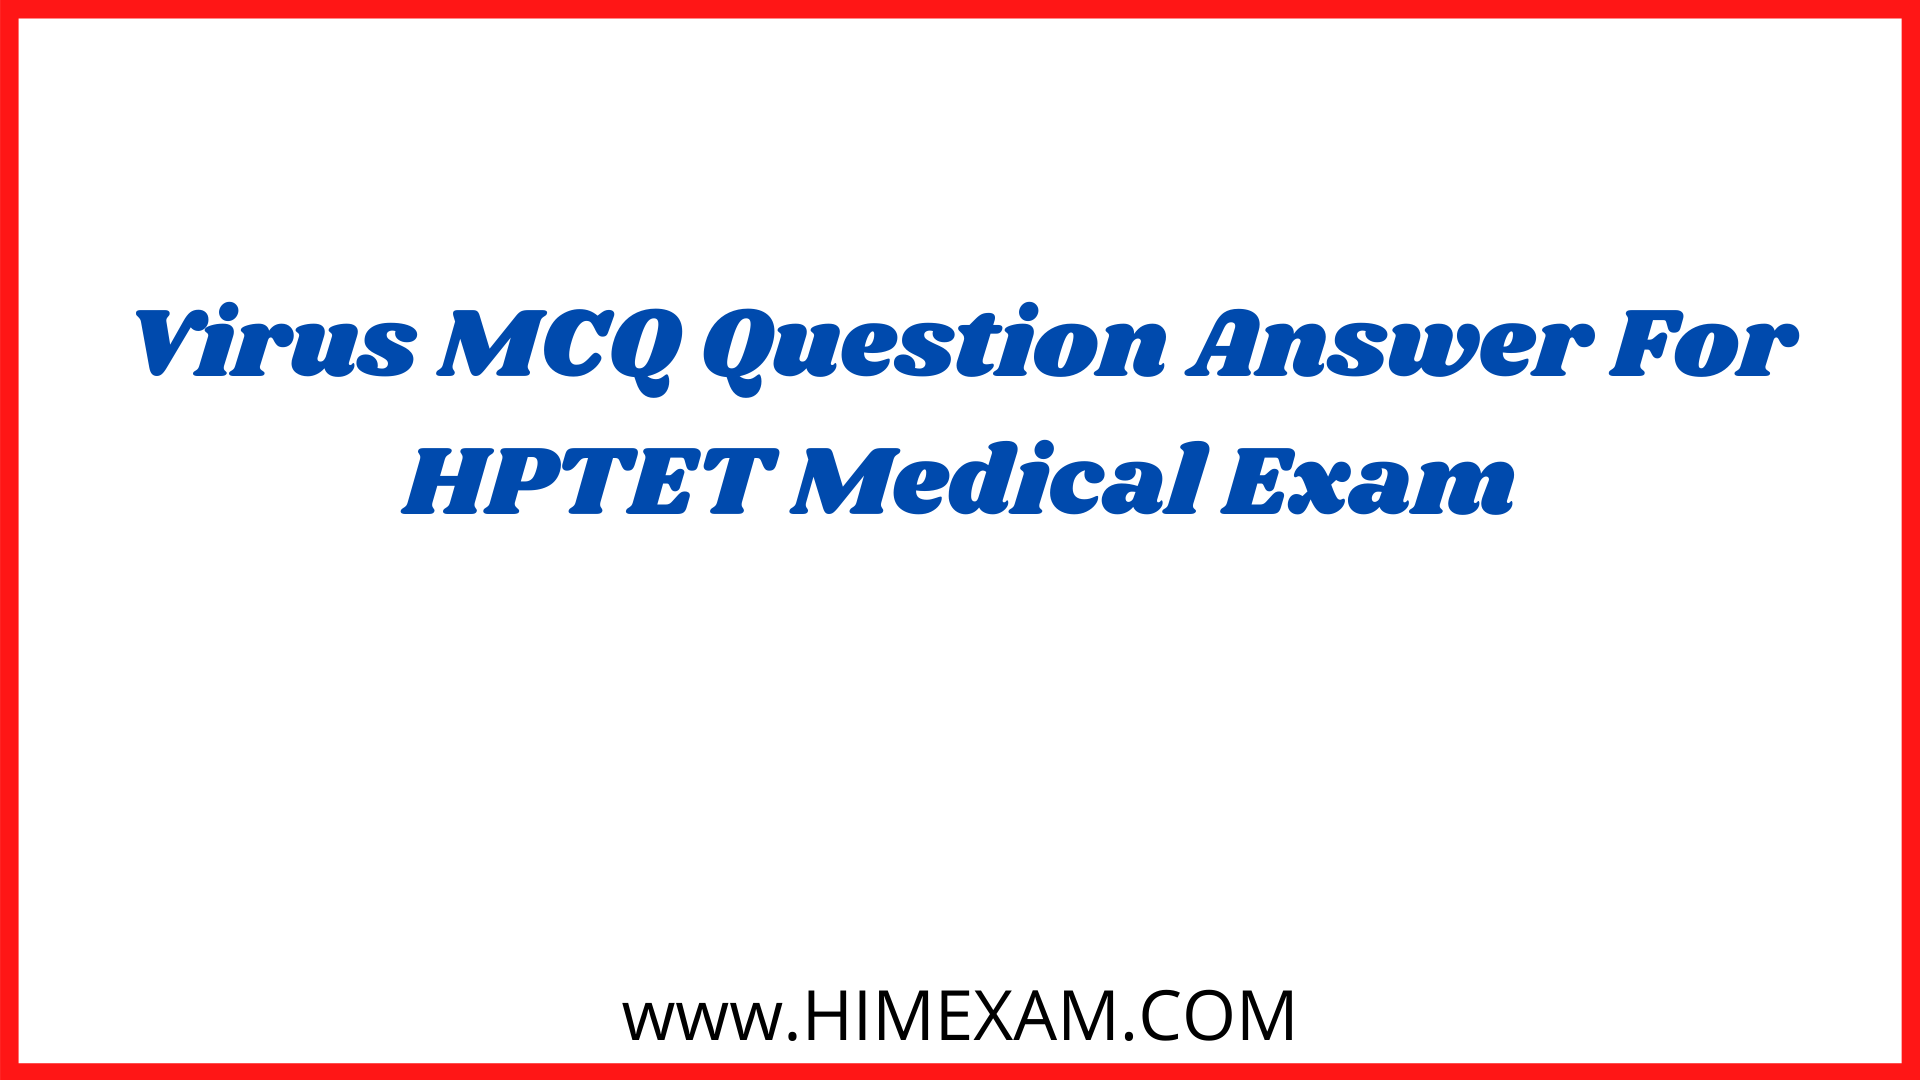 Virus MCQ Question Answer For HPTET Medical Exam